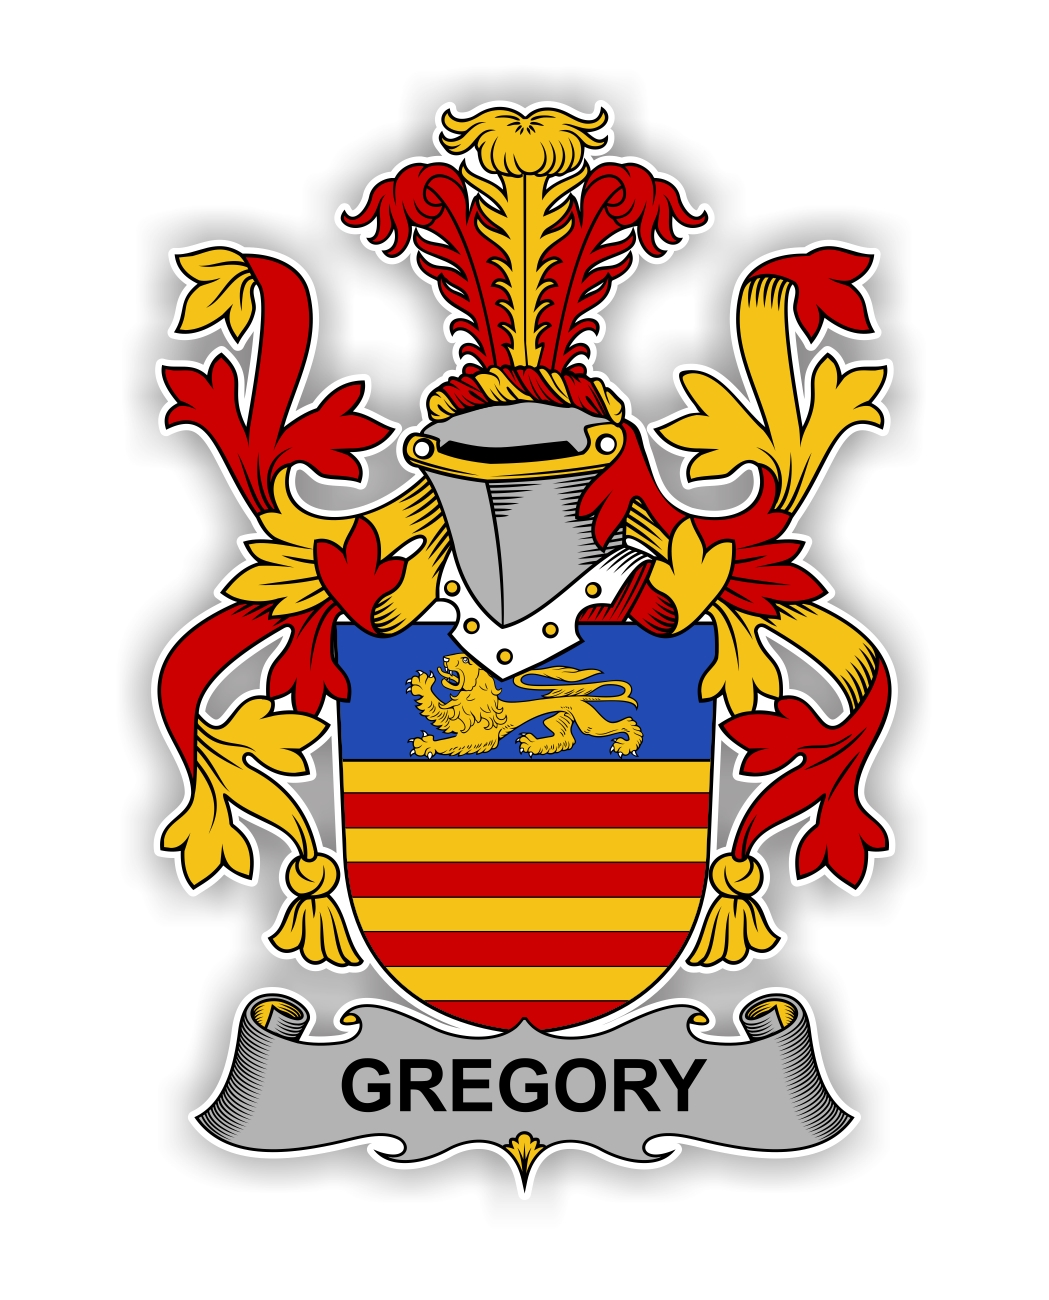 Gregory Family Crest Vinyl Die Cut Decal Sticker 4